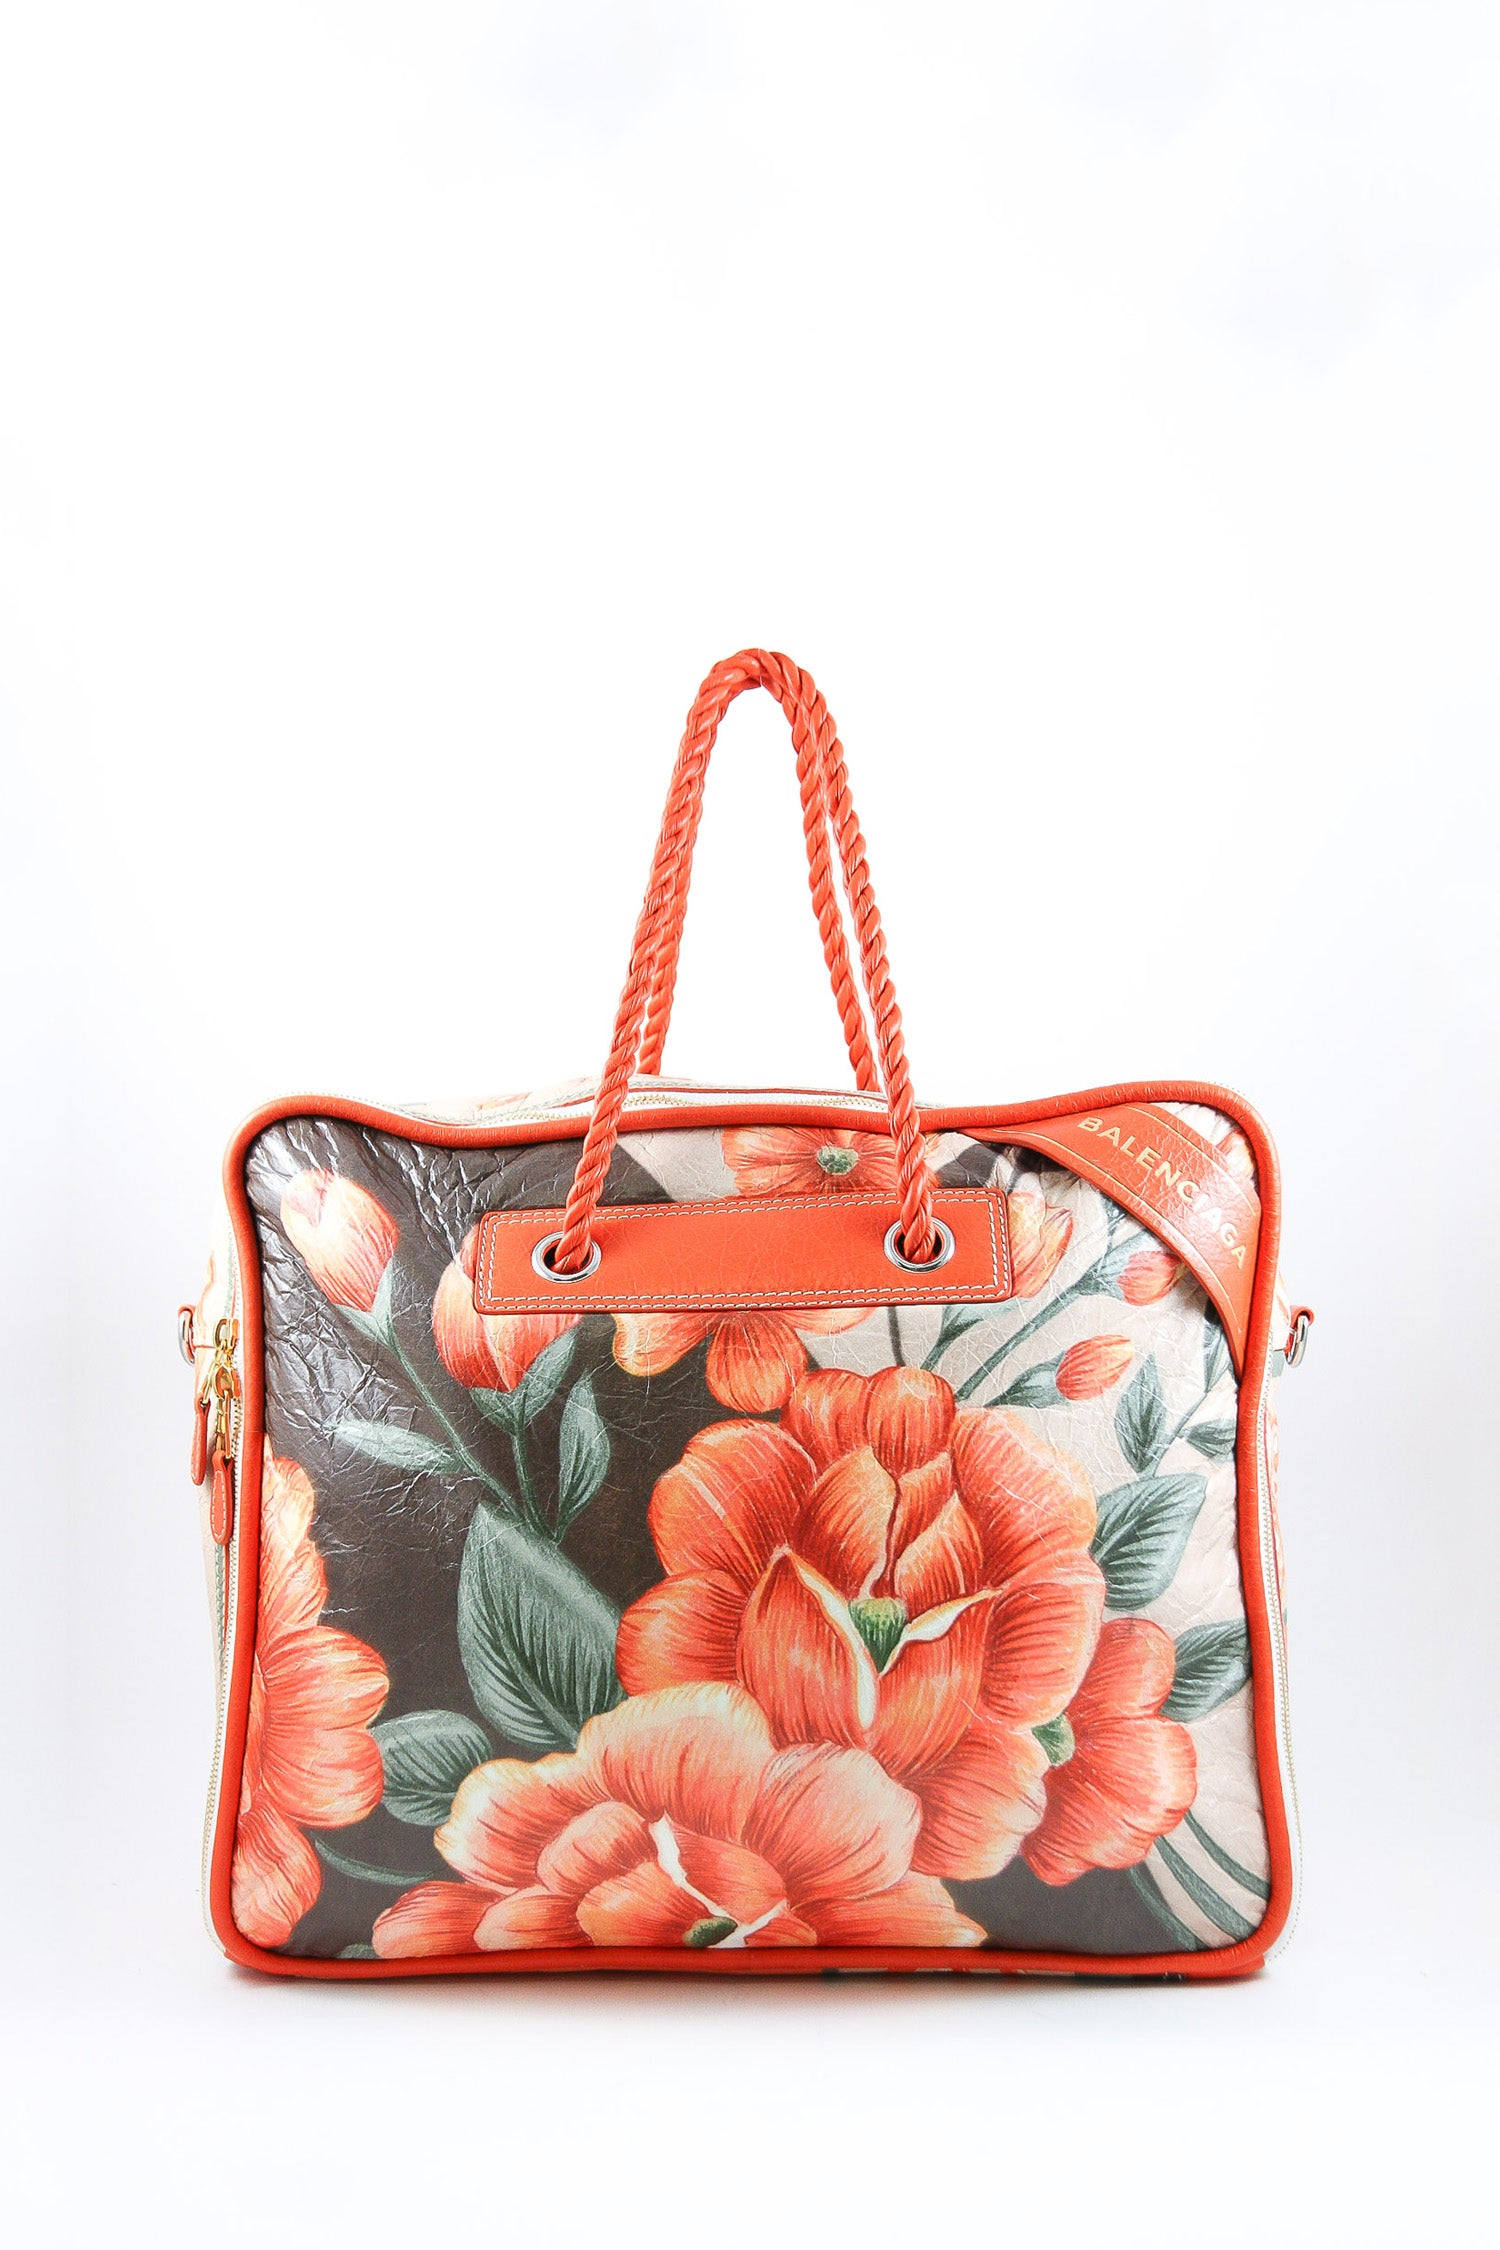 Balenciaga Orange Floral Blanket Square Bag